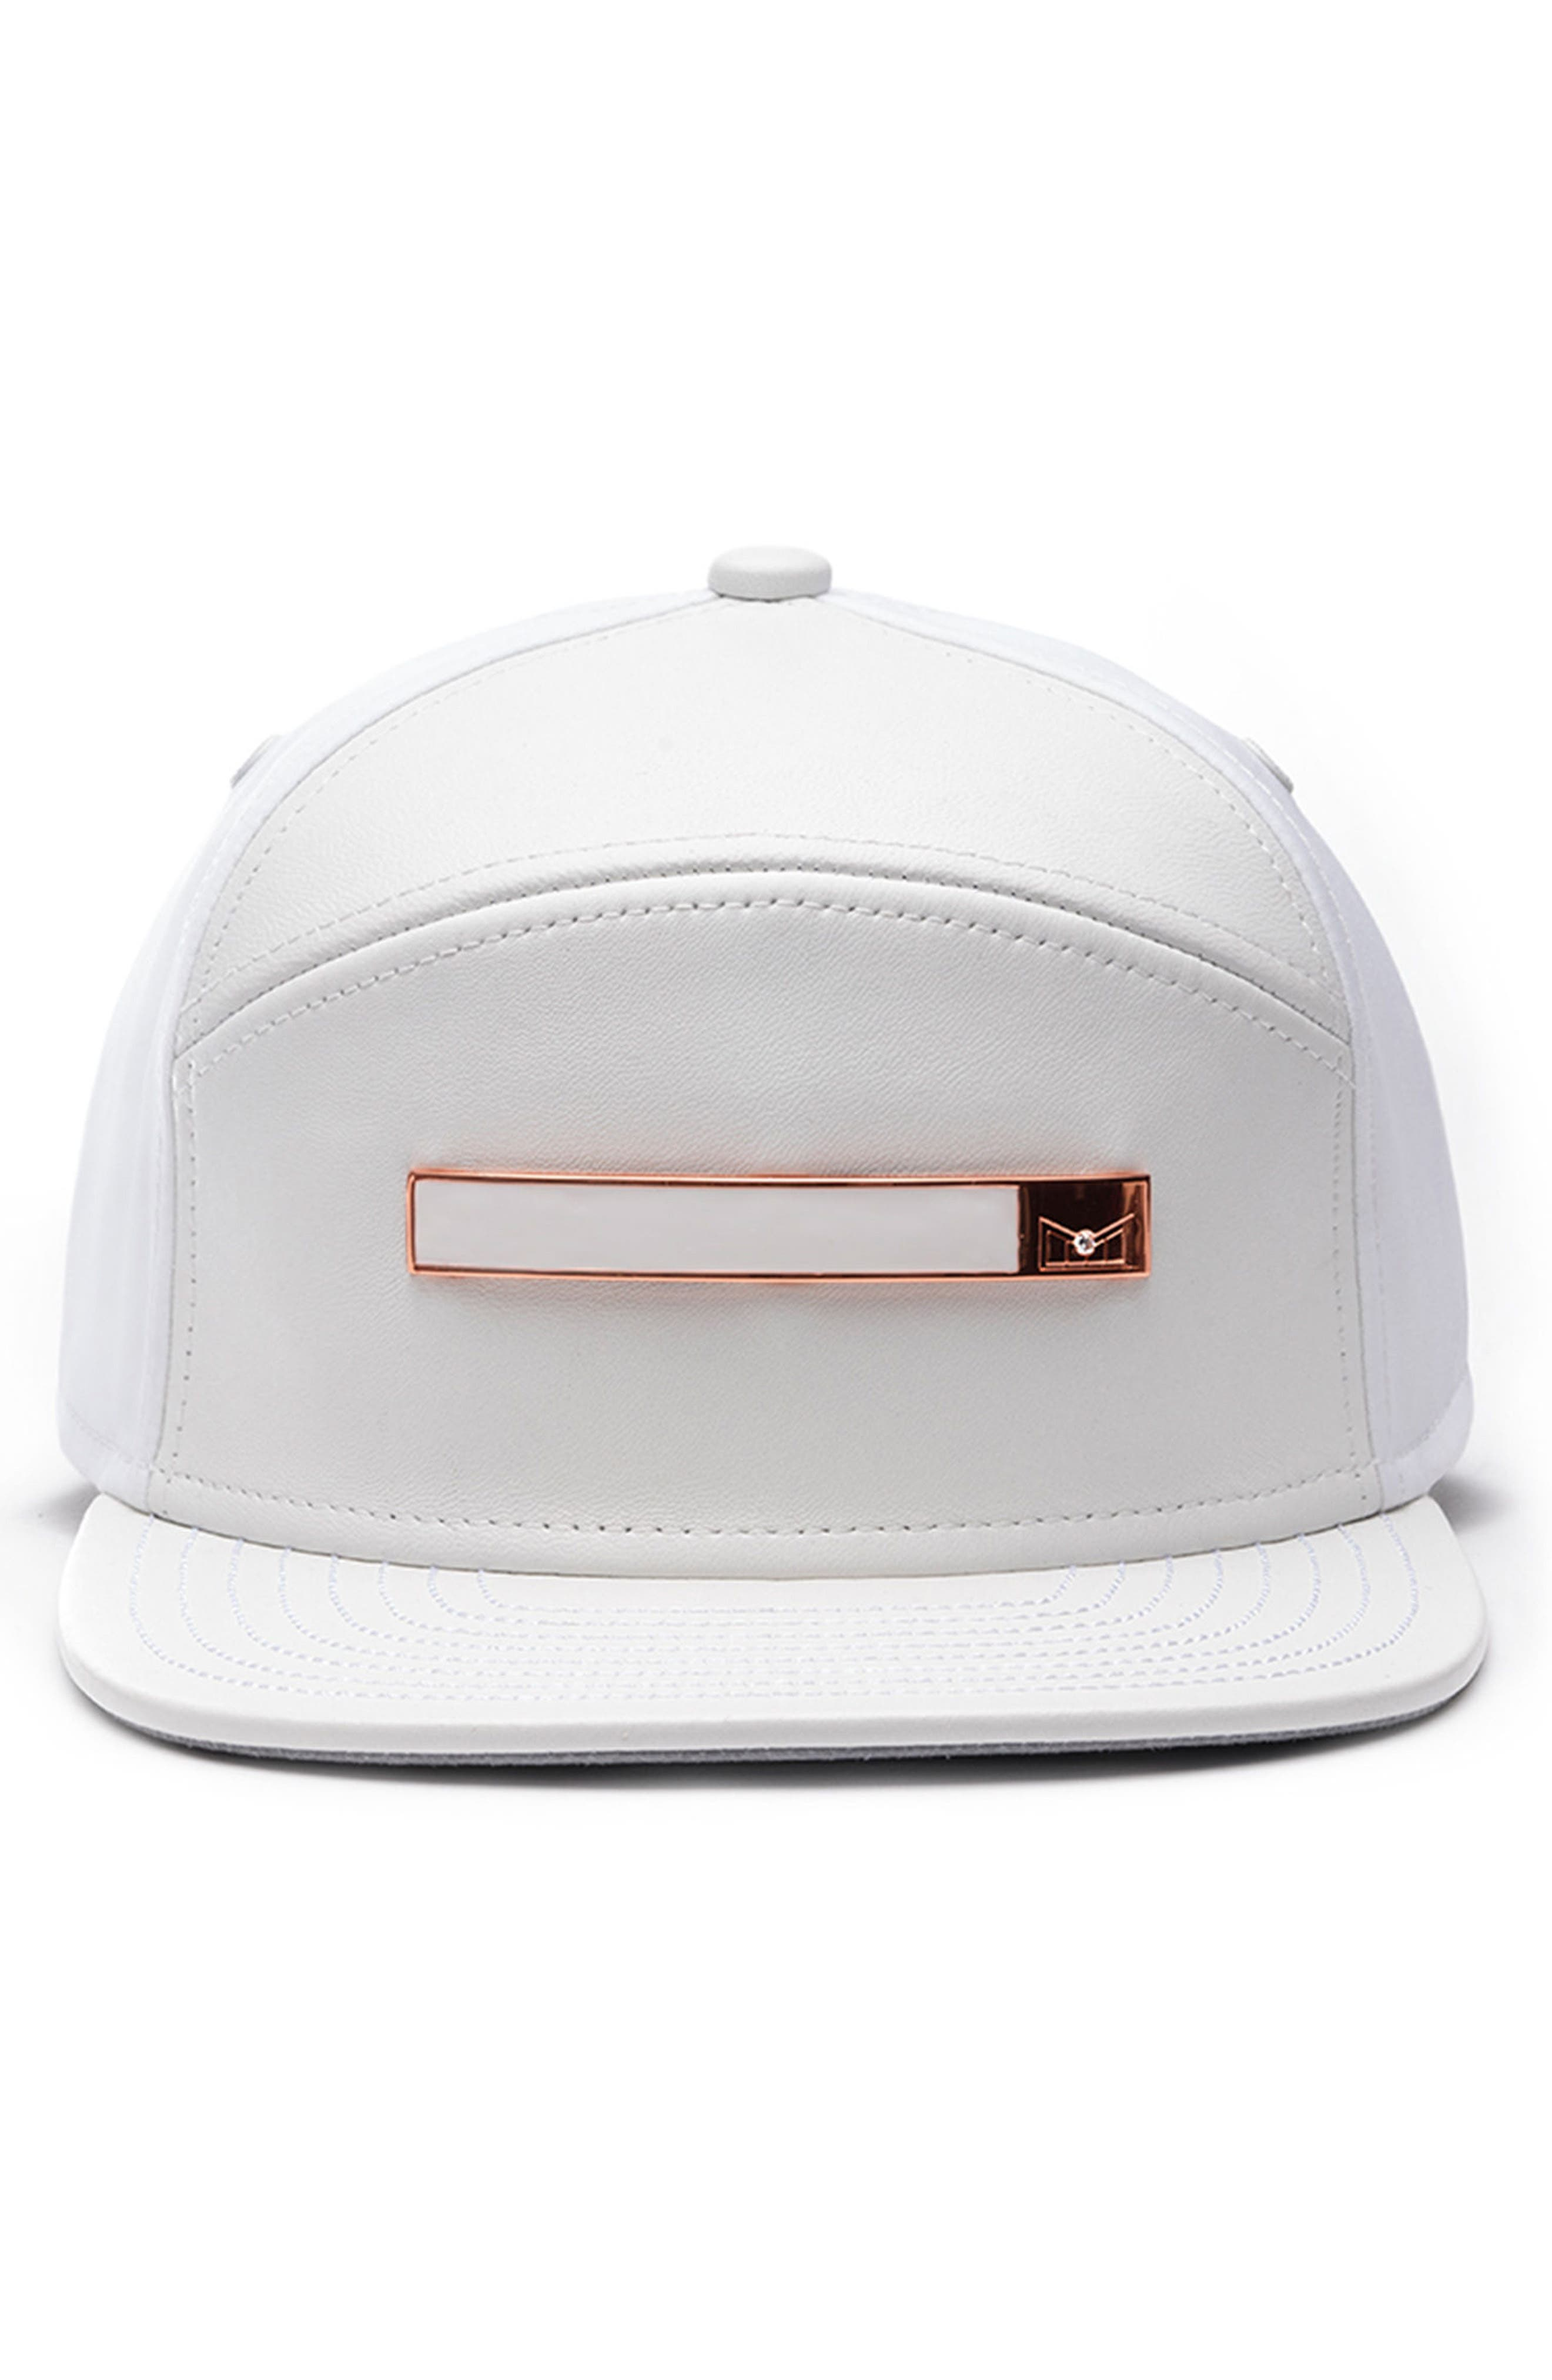 Dynasty V Limited Edition Leather, Cashmere, Wool & Diamond Cap,                             Alternate thumbnail 2, color,                             White